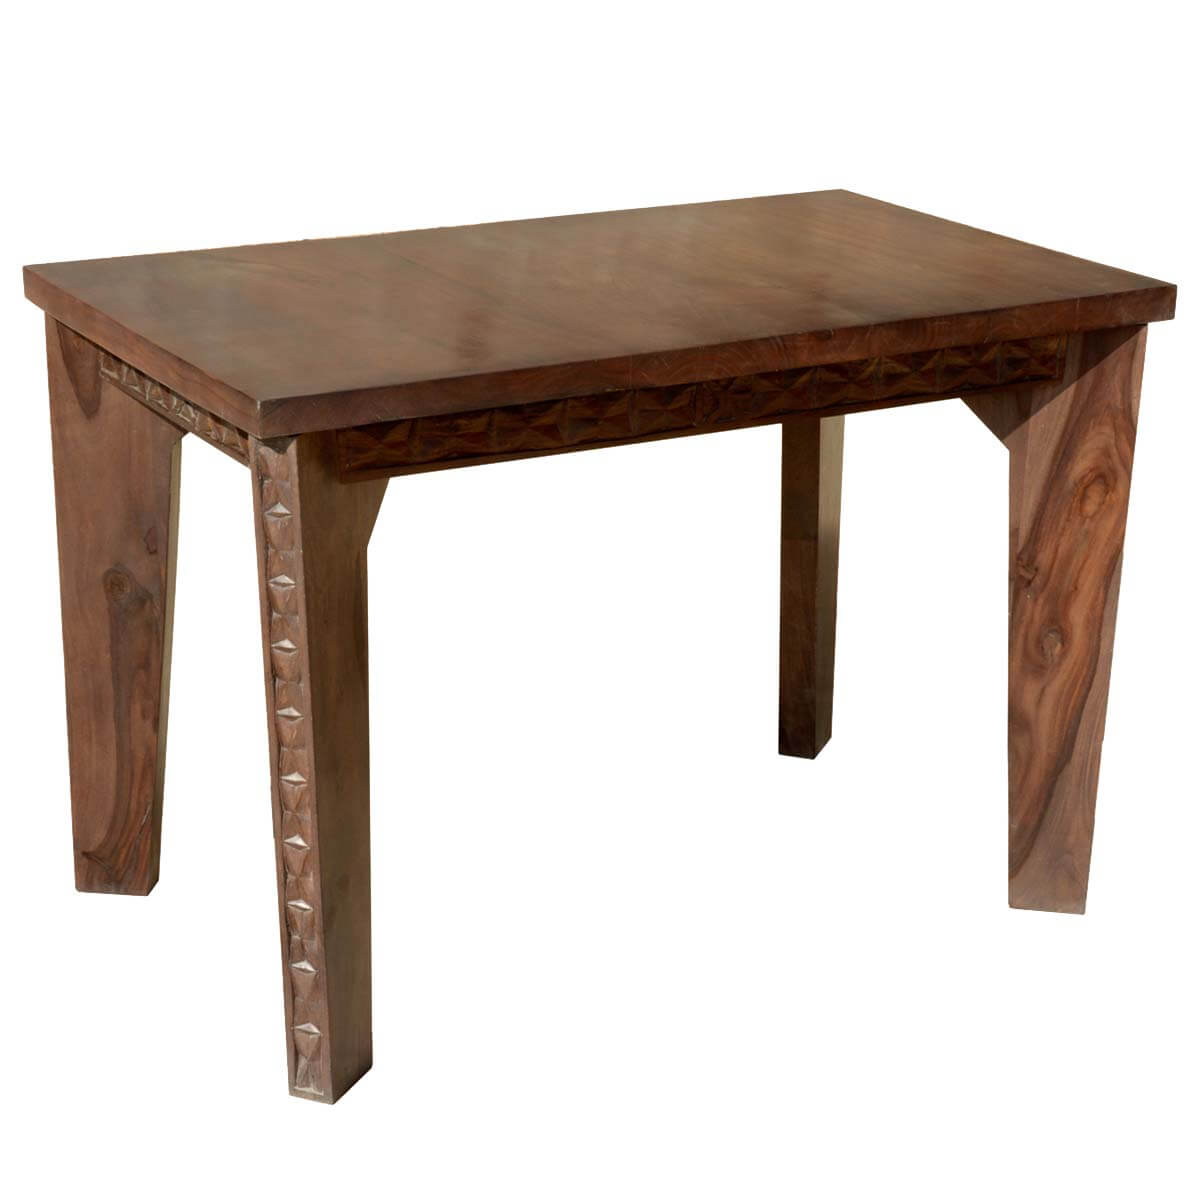 Geometric Hand Carved Solid Wood Turned Leg Dining Table : 4709 from www.sierralivingconcepts.com size 1200 x 1200 jpeg 72kB